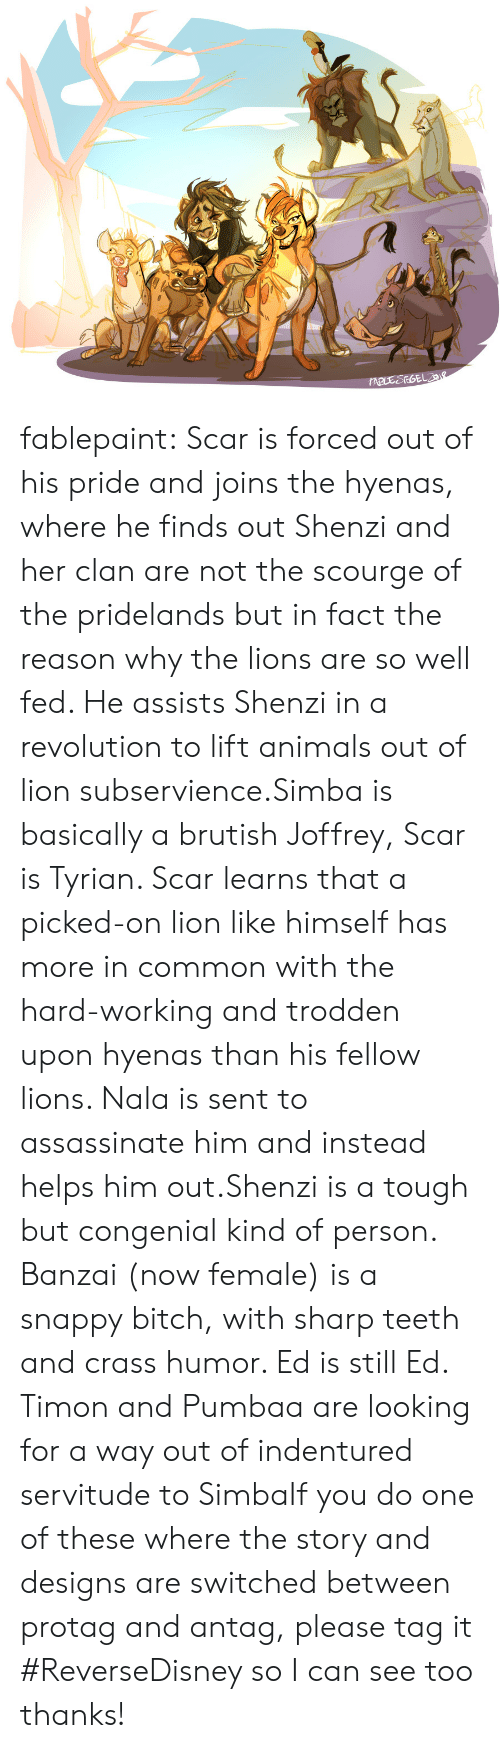 scar: fablepaint:    Scar is forced out of his pride and joins the hyenas, where he finds out Shenzi and her clan are not the scourge of the pridelands but in fact the reason why the lions are so well fed. He assists Shenzi in a revolution to lift animals out of lion subservience.Simba is basically a brutish Joffrey, Scar is Tyrian. Scar learns that a picked-on lion like himself has more in common with the hard-working and trodden upon hyenas than his fellow lions. Nala is sent to assassinate him and instead helps him out.Shenzi is a tough but congenial kind of person. Banzai (now female) is a snappy bitch, with sharp teeth and crass humor. Ed is still Ed. Timon and Pumbaa are looking for a way out of indentured servitude to SimbaIf you do one of these where the story and designs are switched between protag and antag, please tag it #ReverseDisney so I can see too thanks!